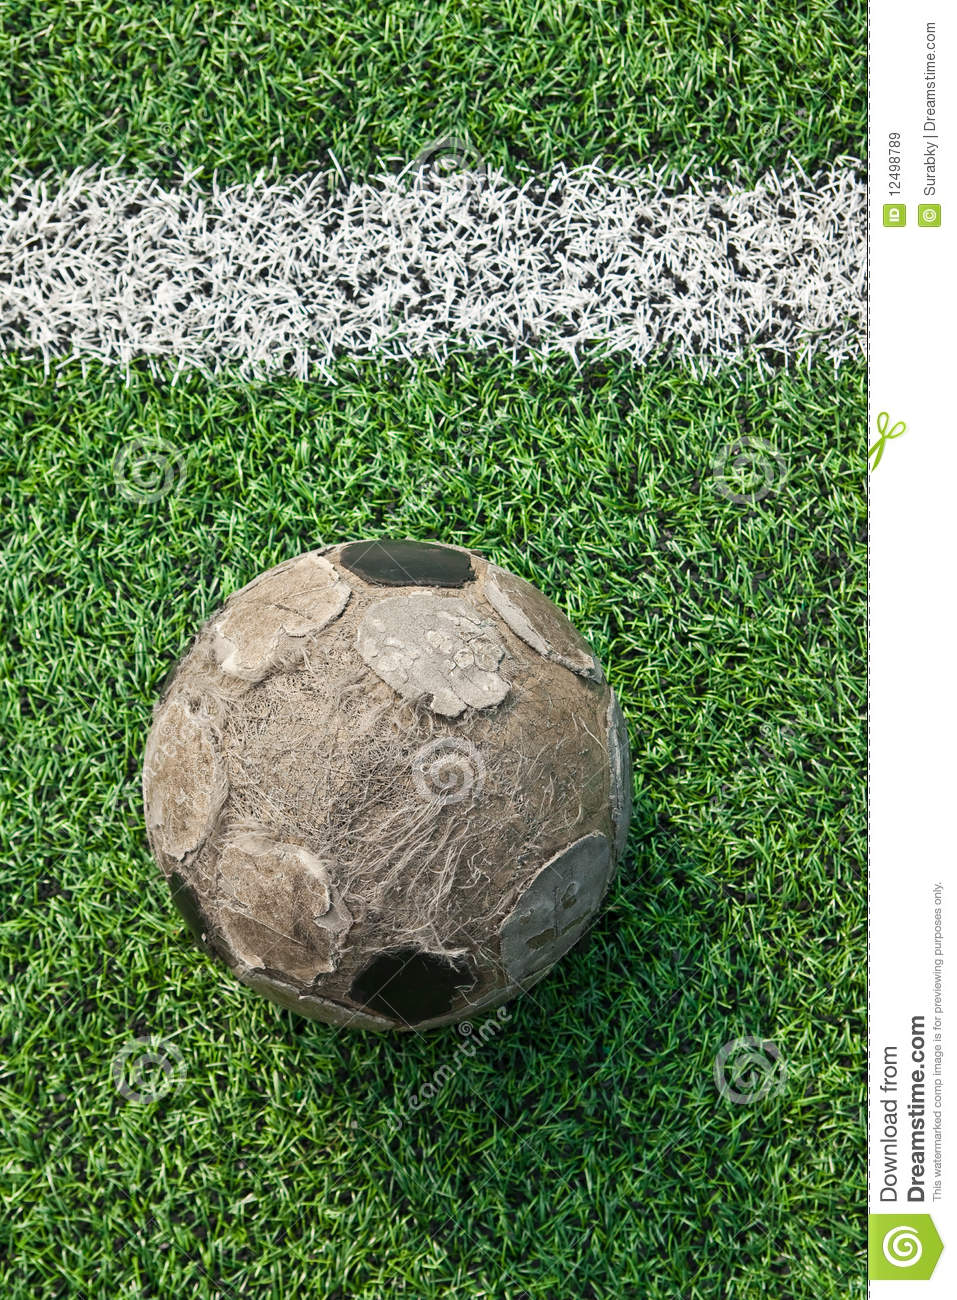 how to pass a soccer ball on the ground